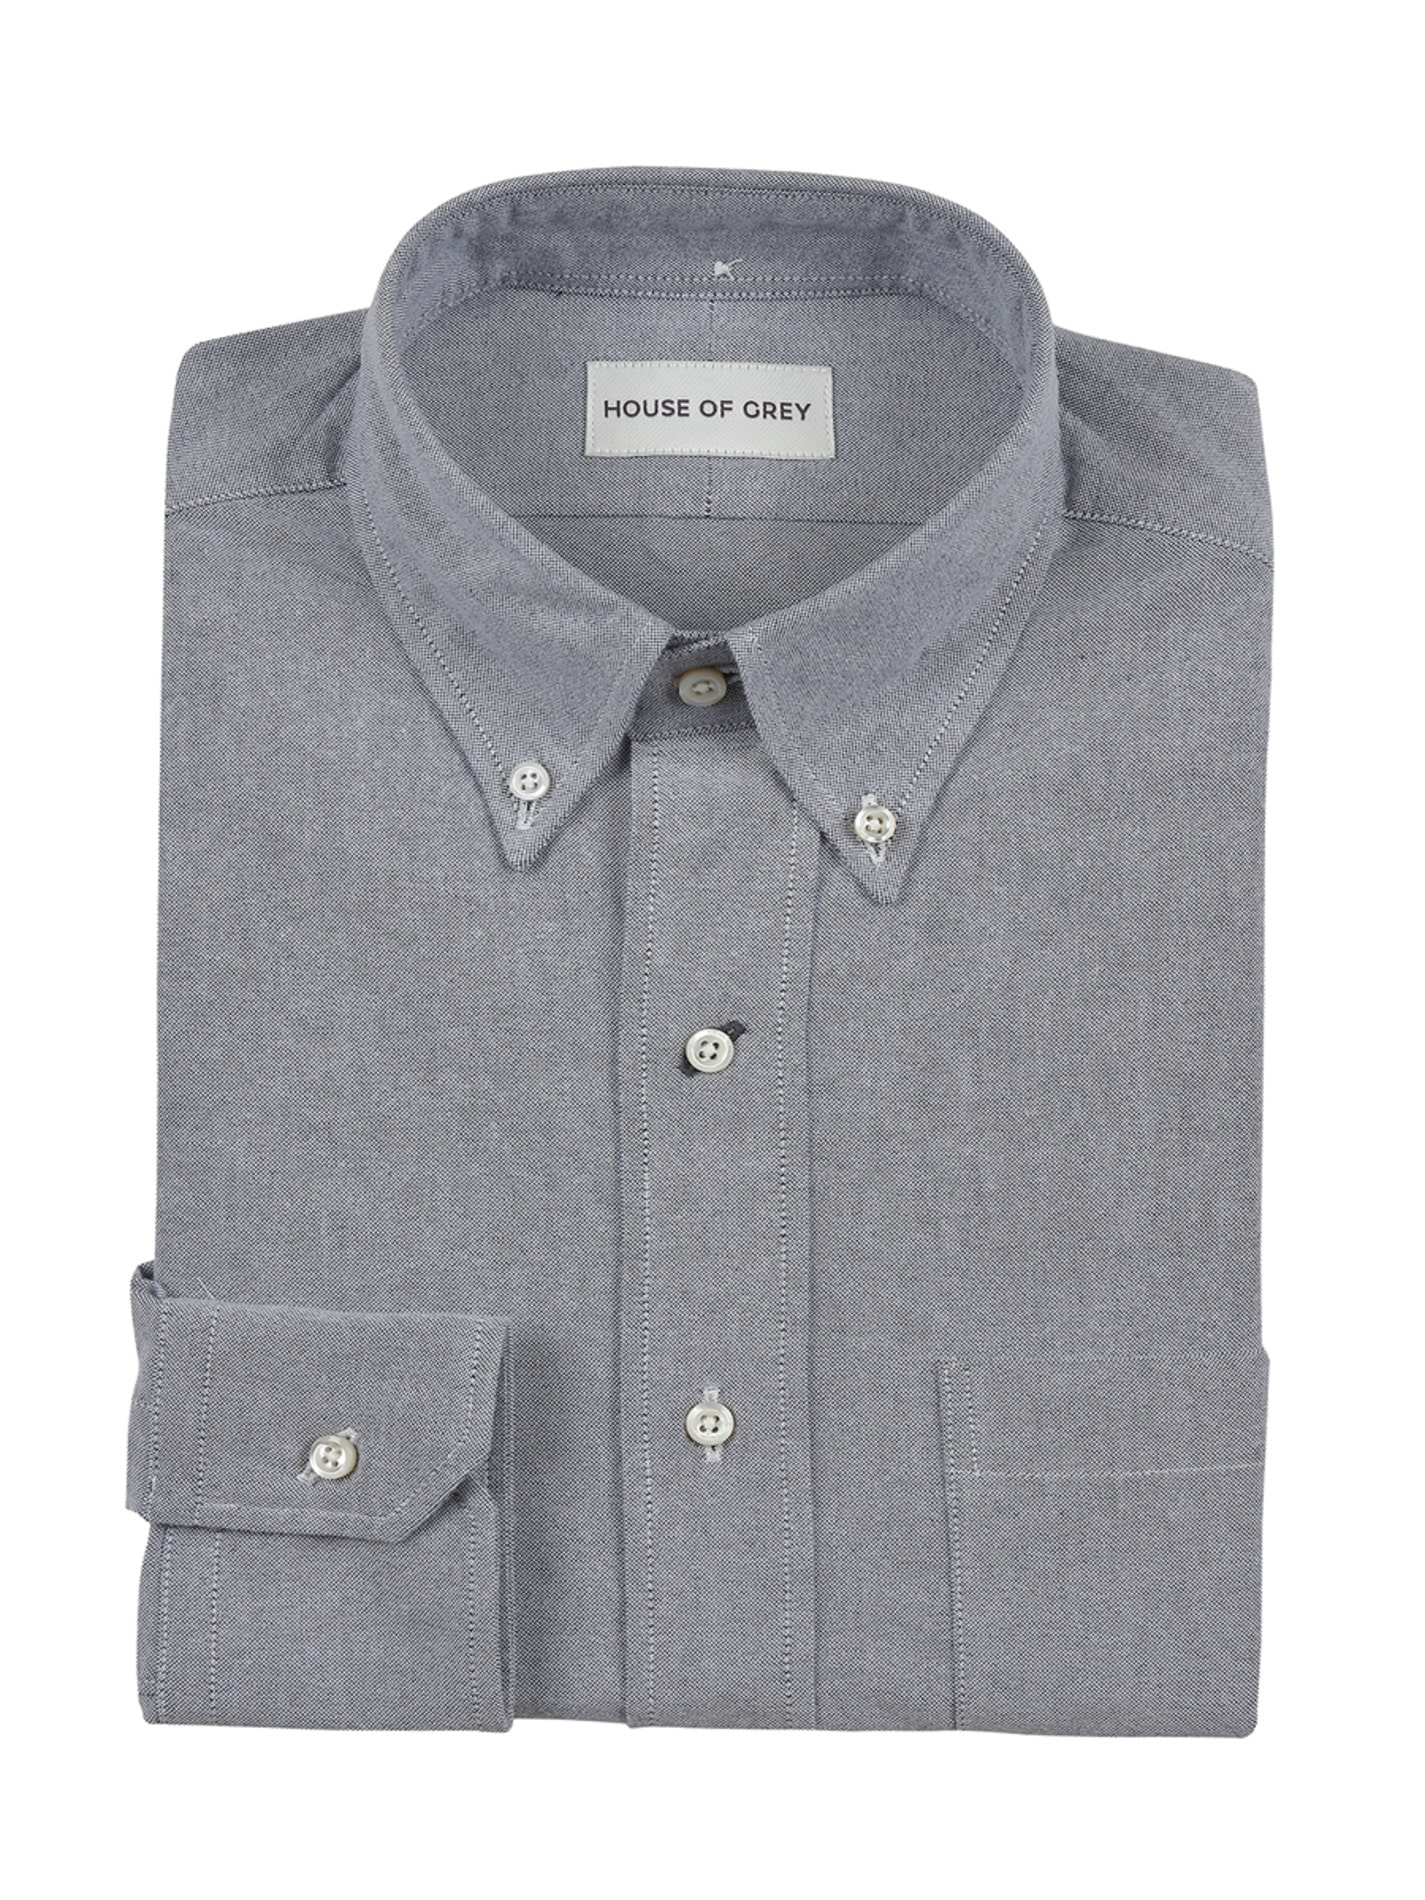 [50% SALE] FLANNEL GREY